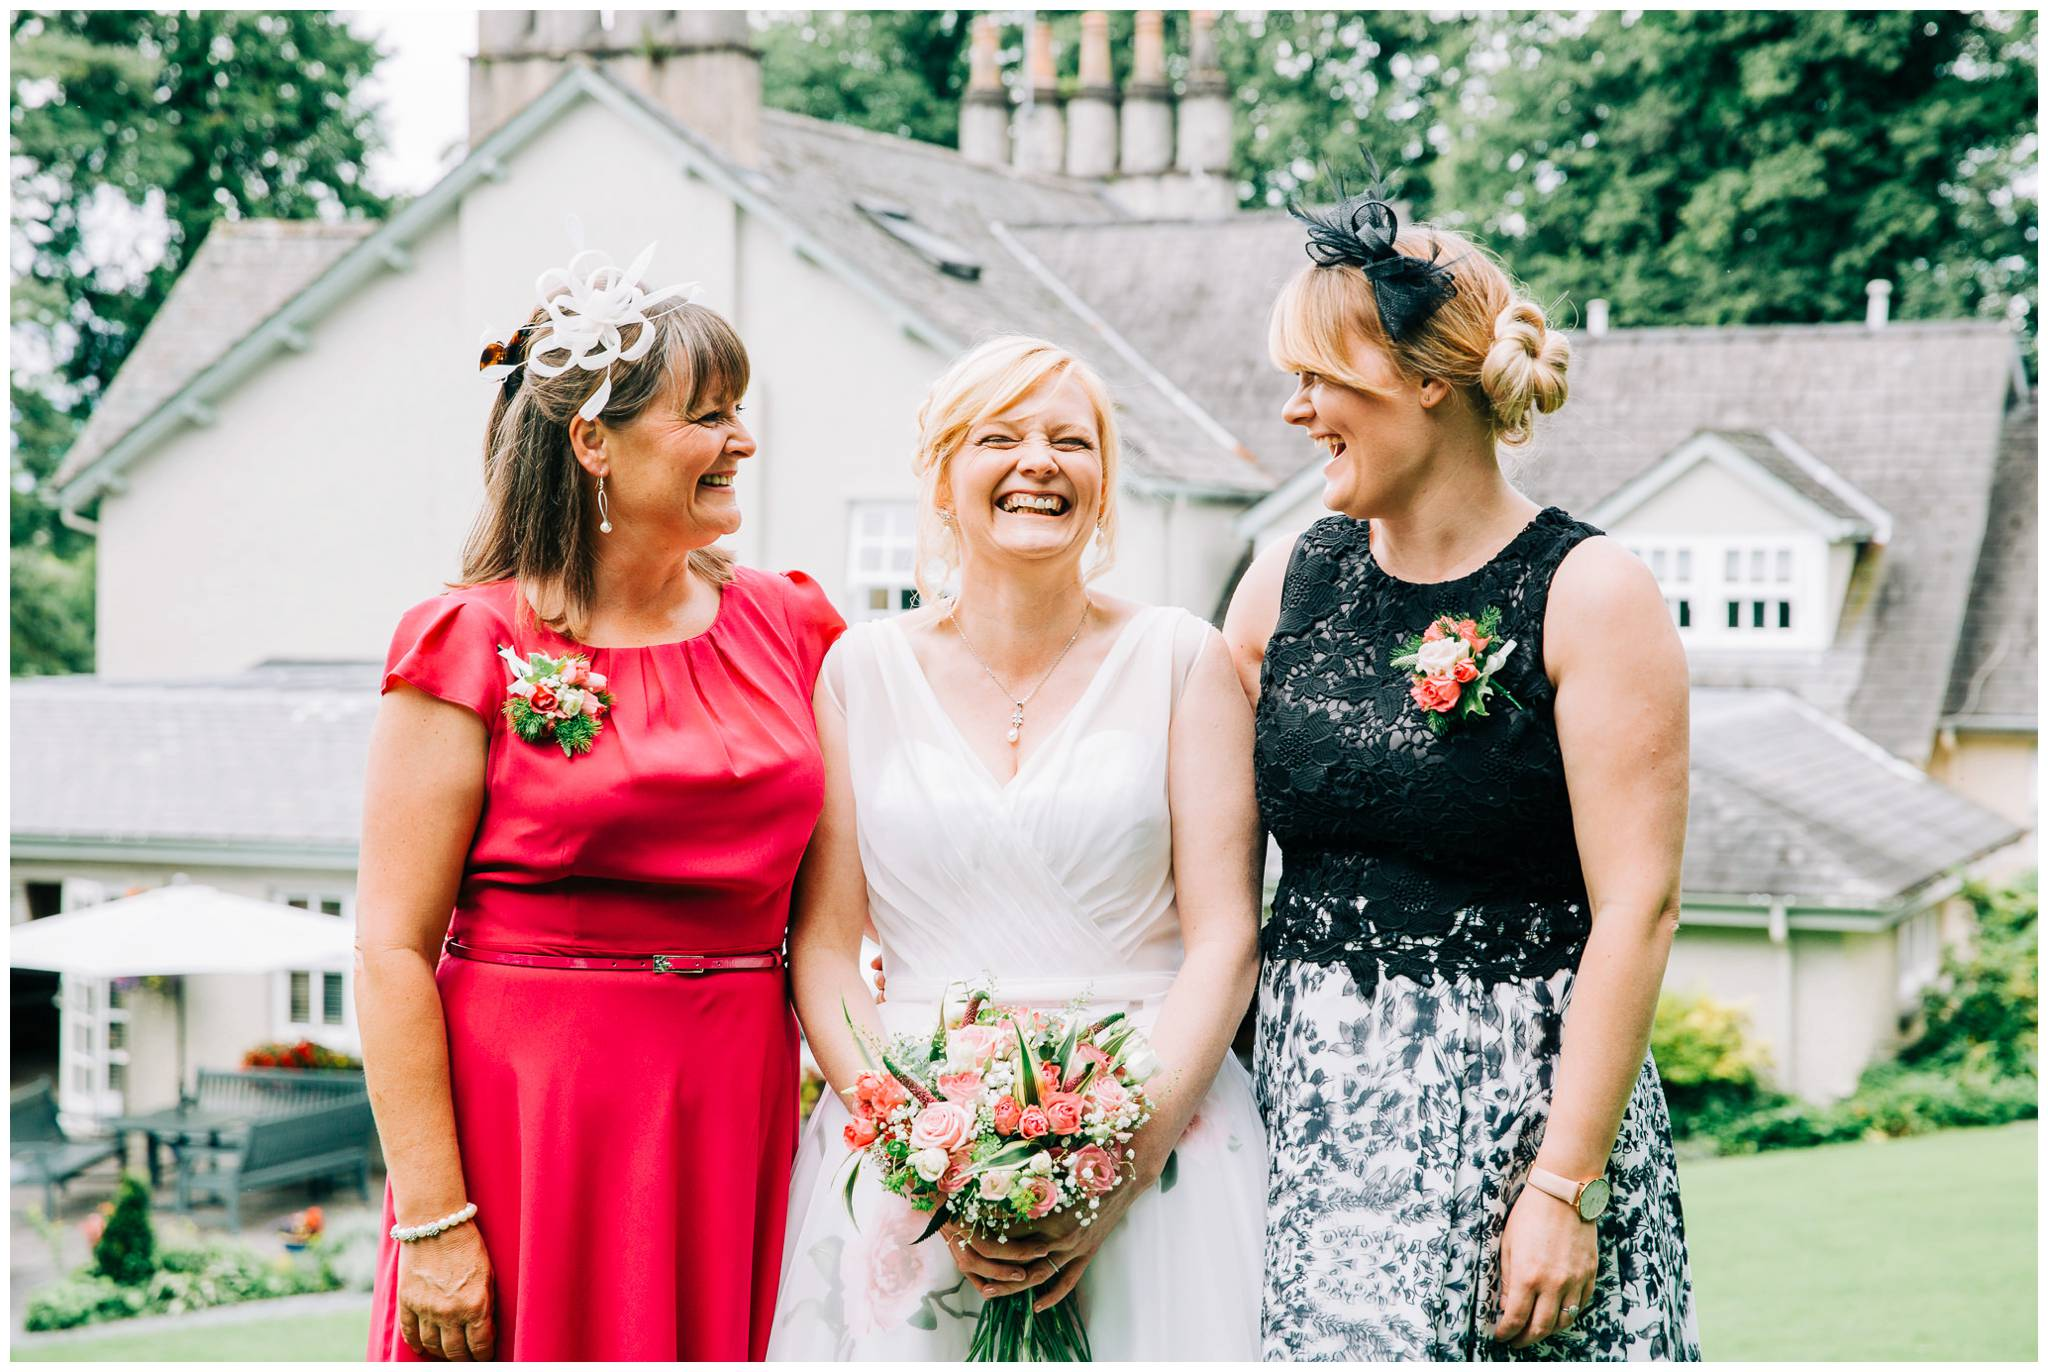 Natural wedding photography Manchester - Clare Robinson Photography_0195.jpg